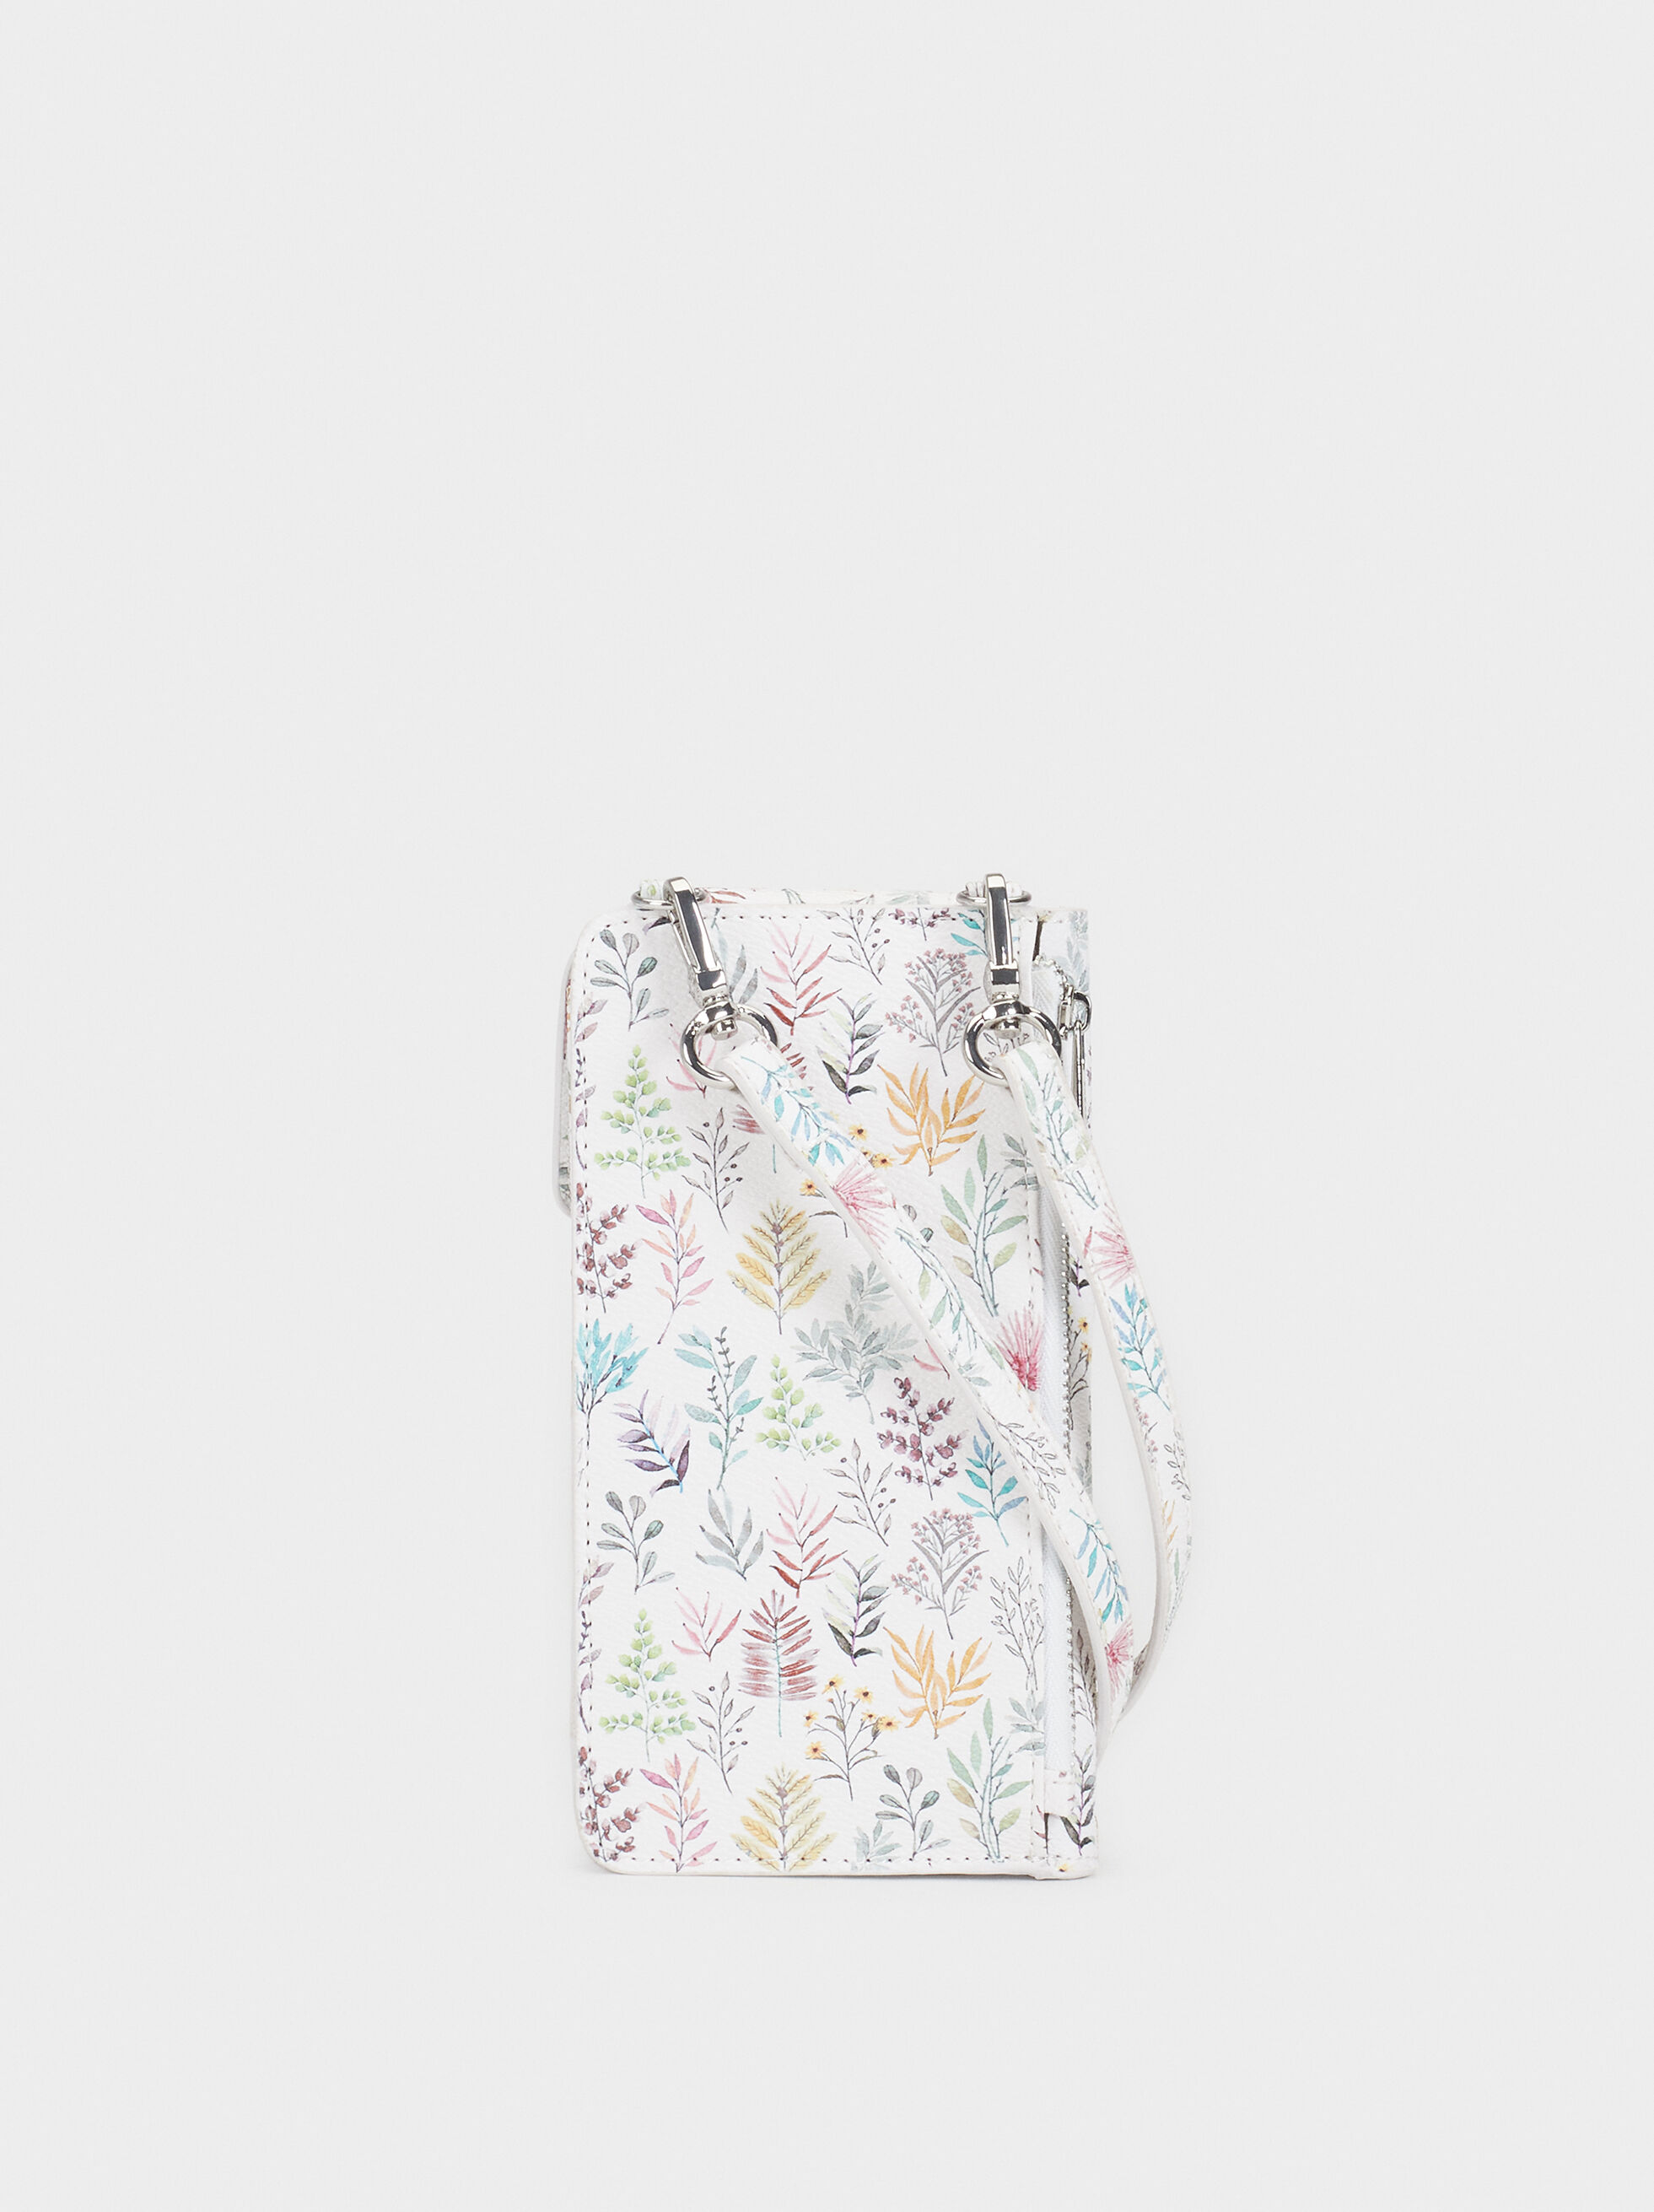 Floral Print Mobile Phone Carrying Case - Phone cases